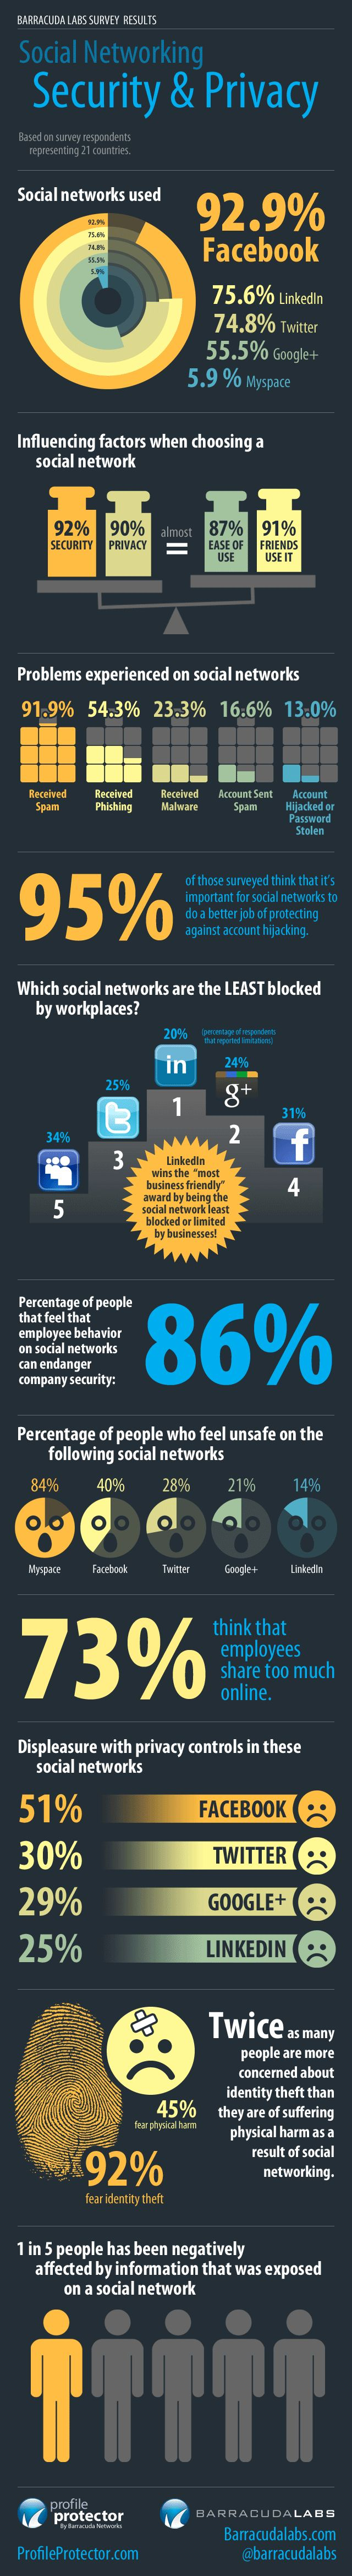 Nice Infographic About Peoples' Social Networking Habits And Attitudes Towards Online Privacy And Security.  #infograph